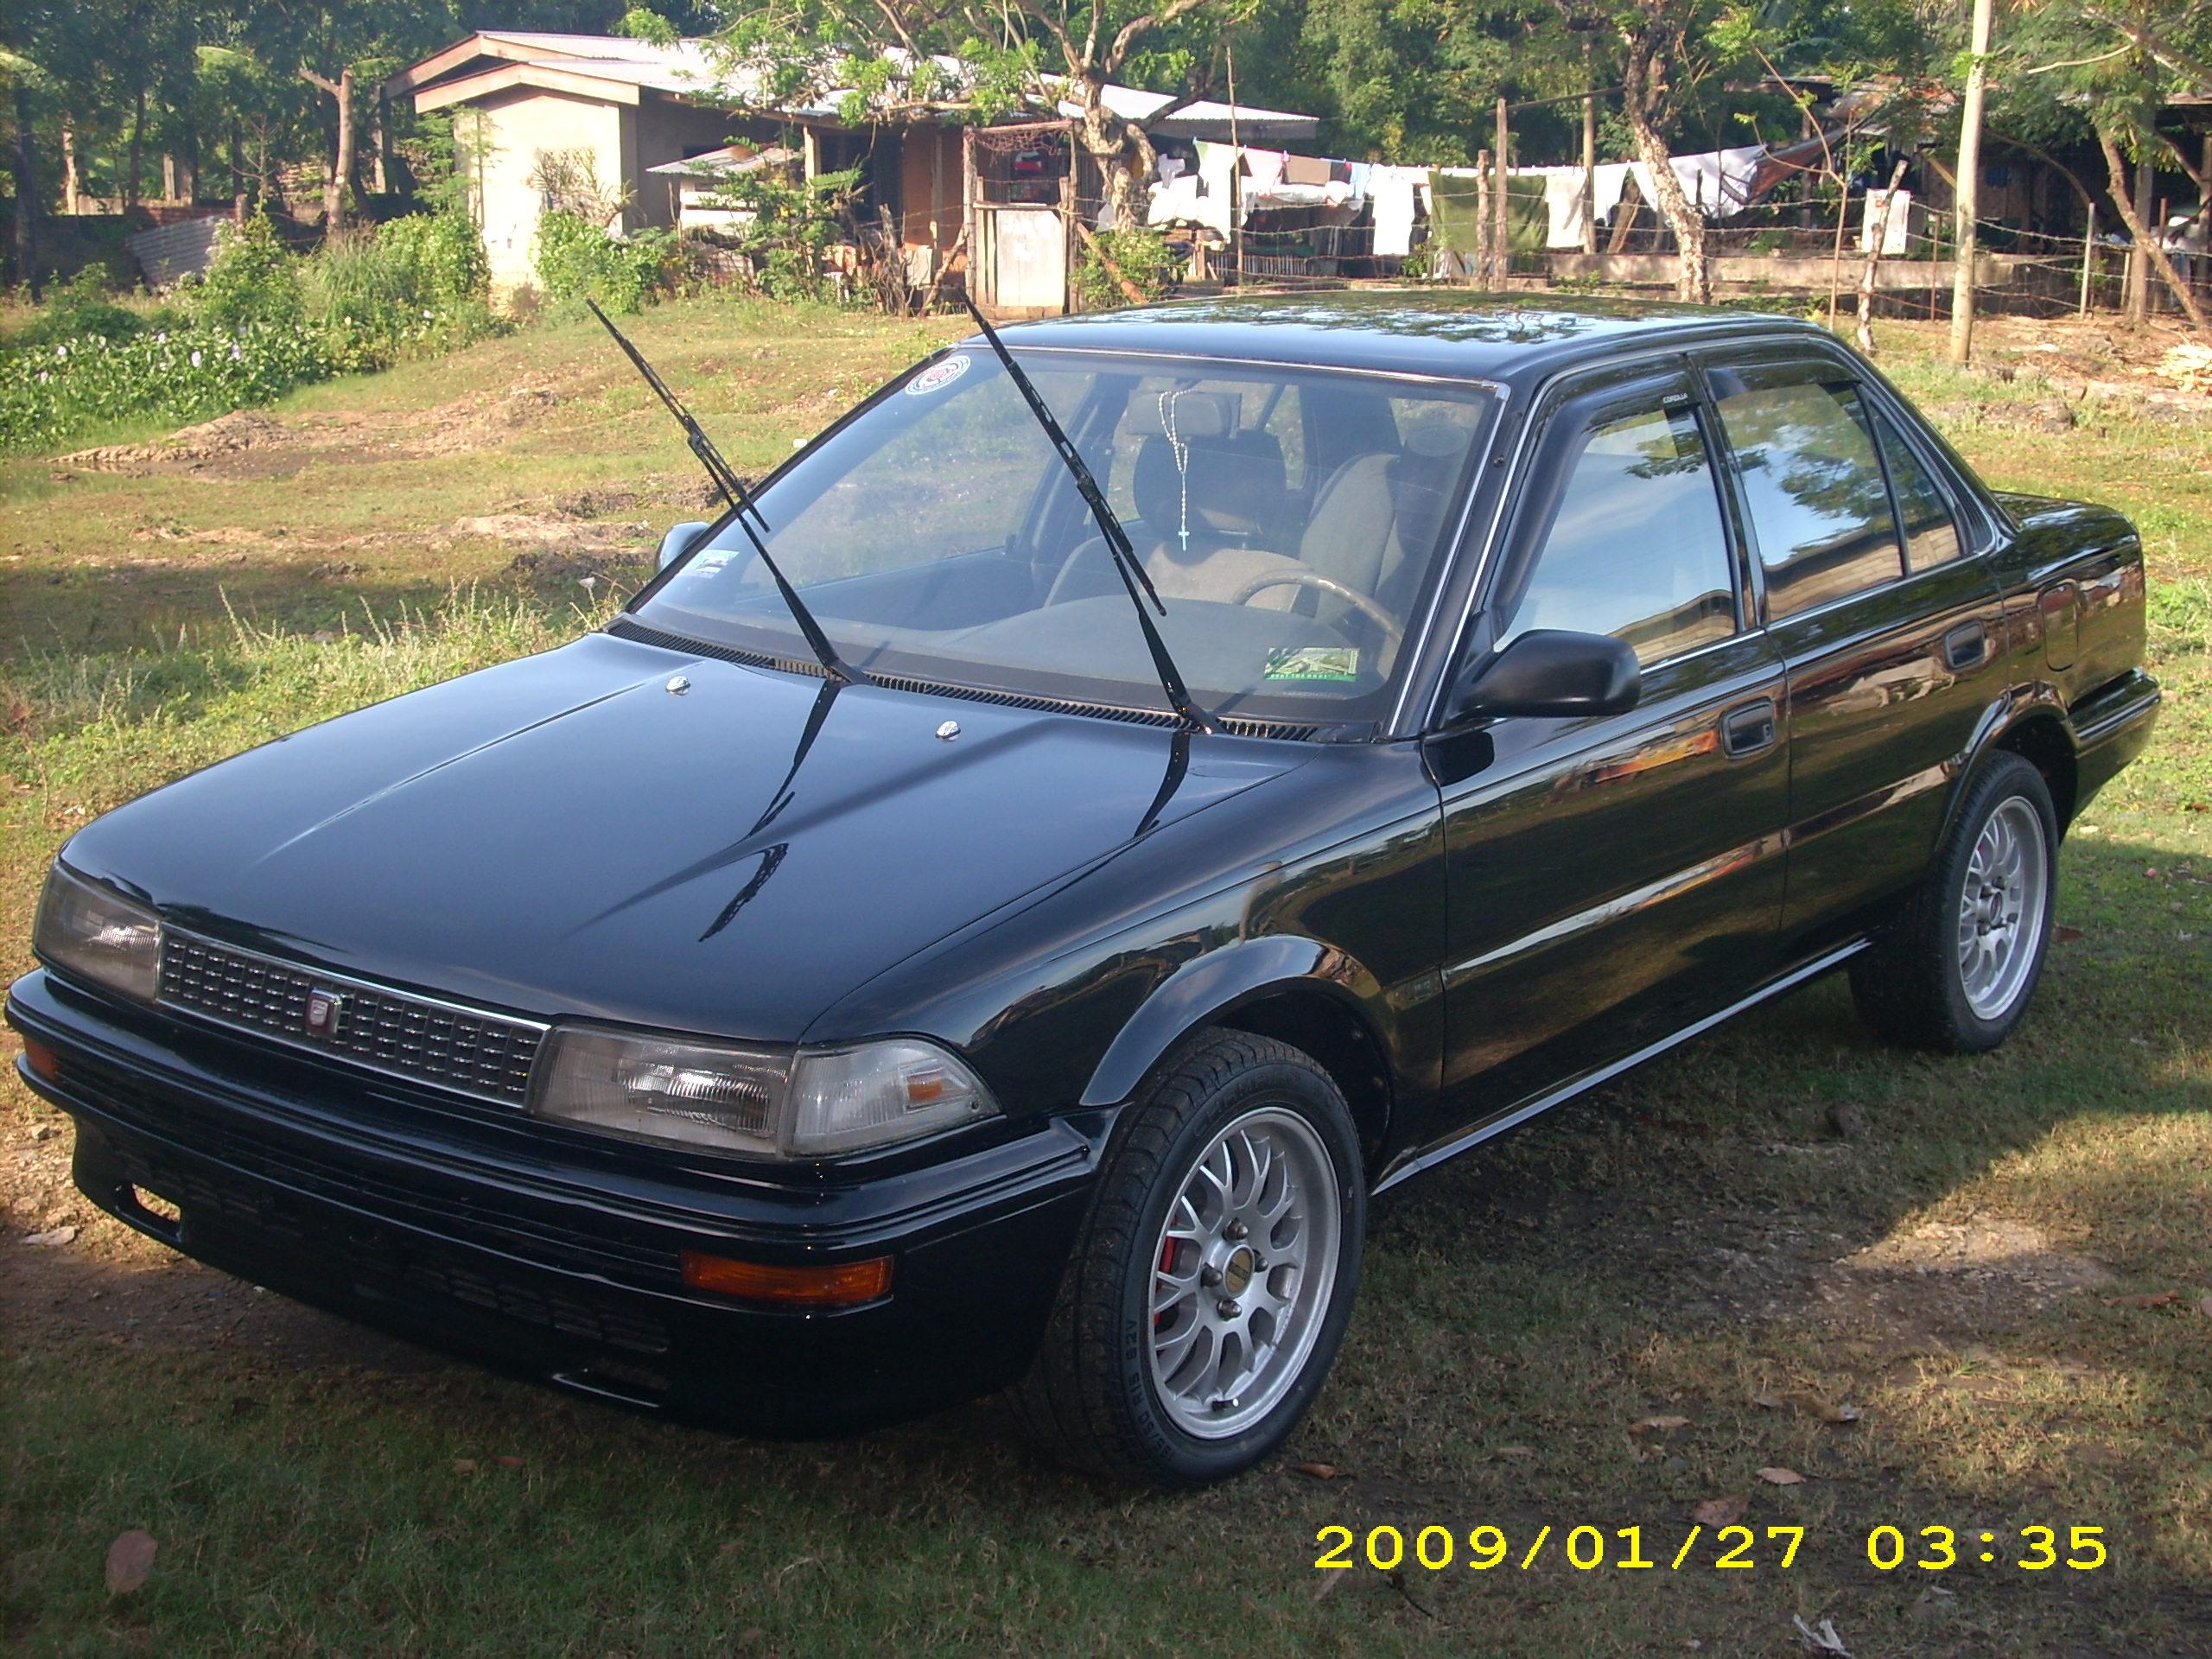 dumbodlork 1992 toyota corolla specs photos modification. Black Bedroom Furniture Sets. Home Design Ideas